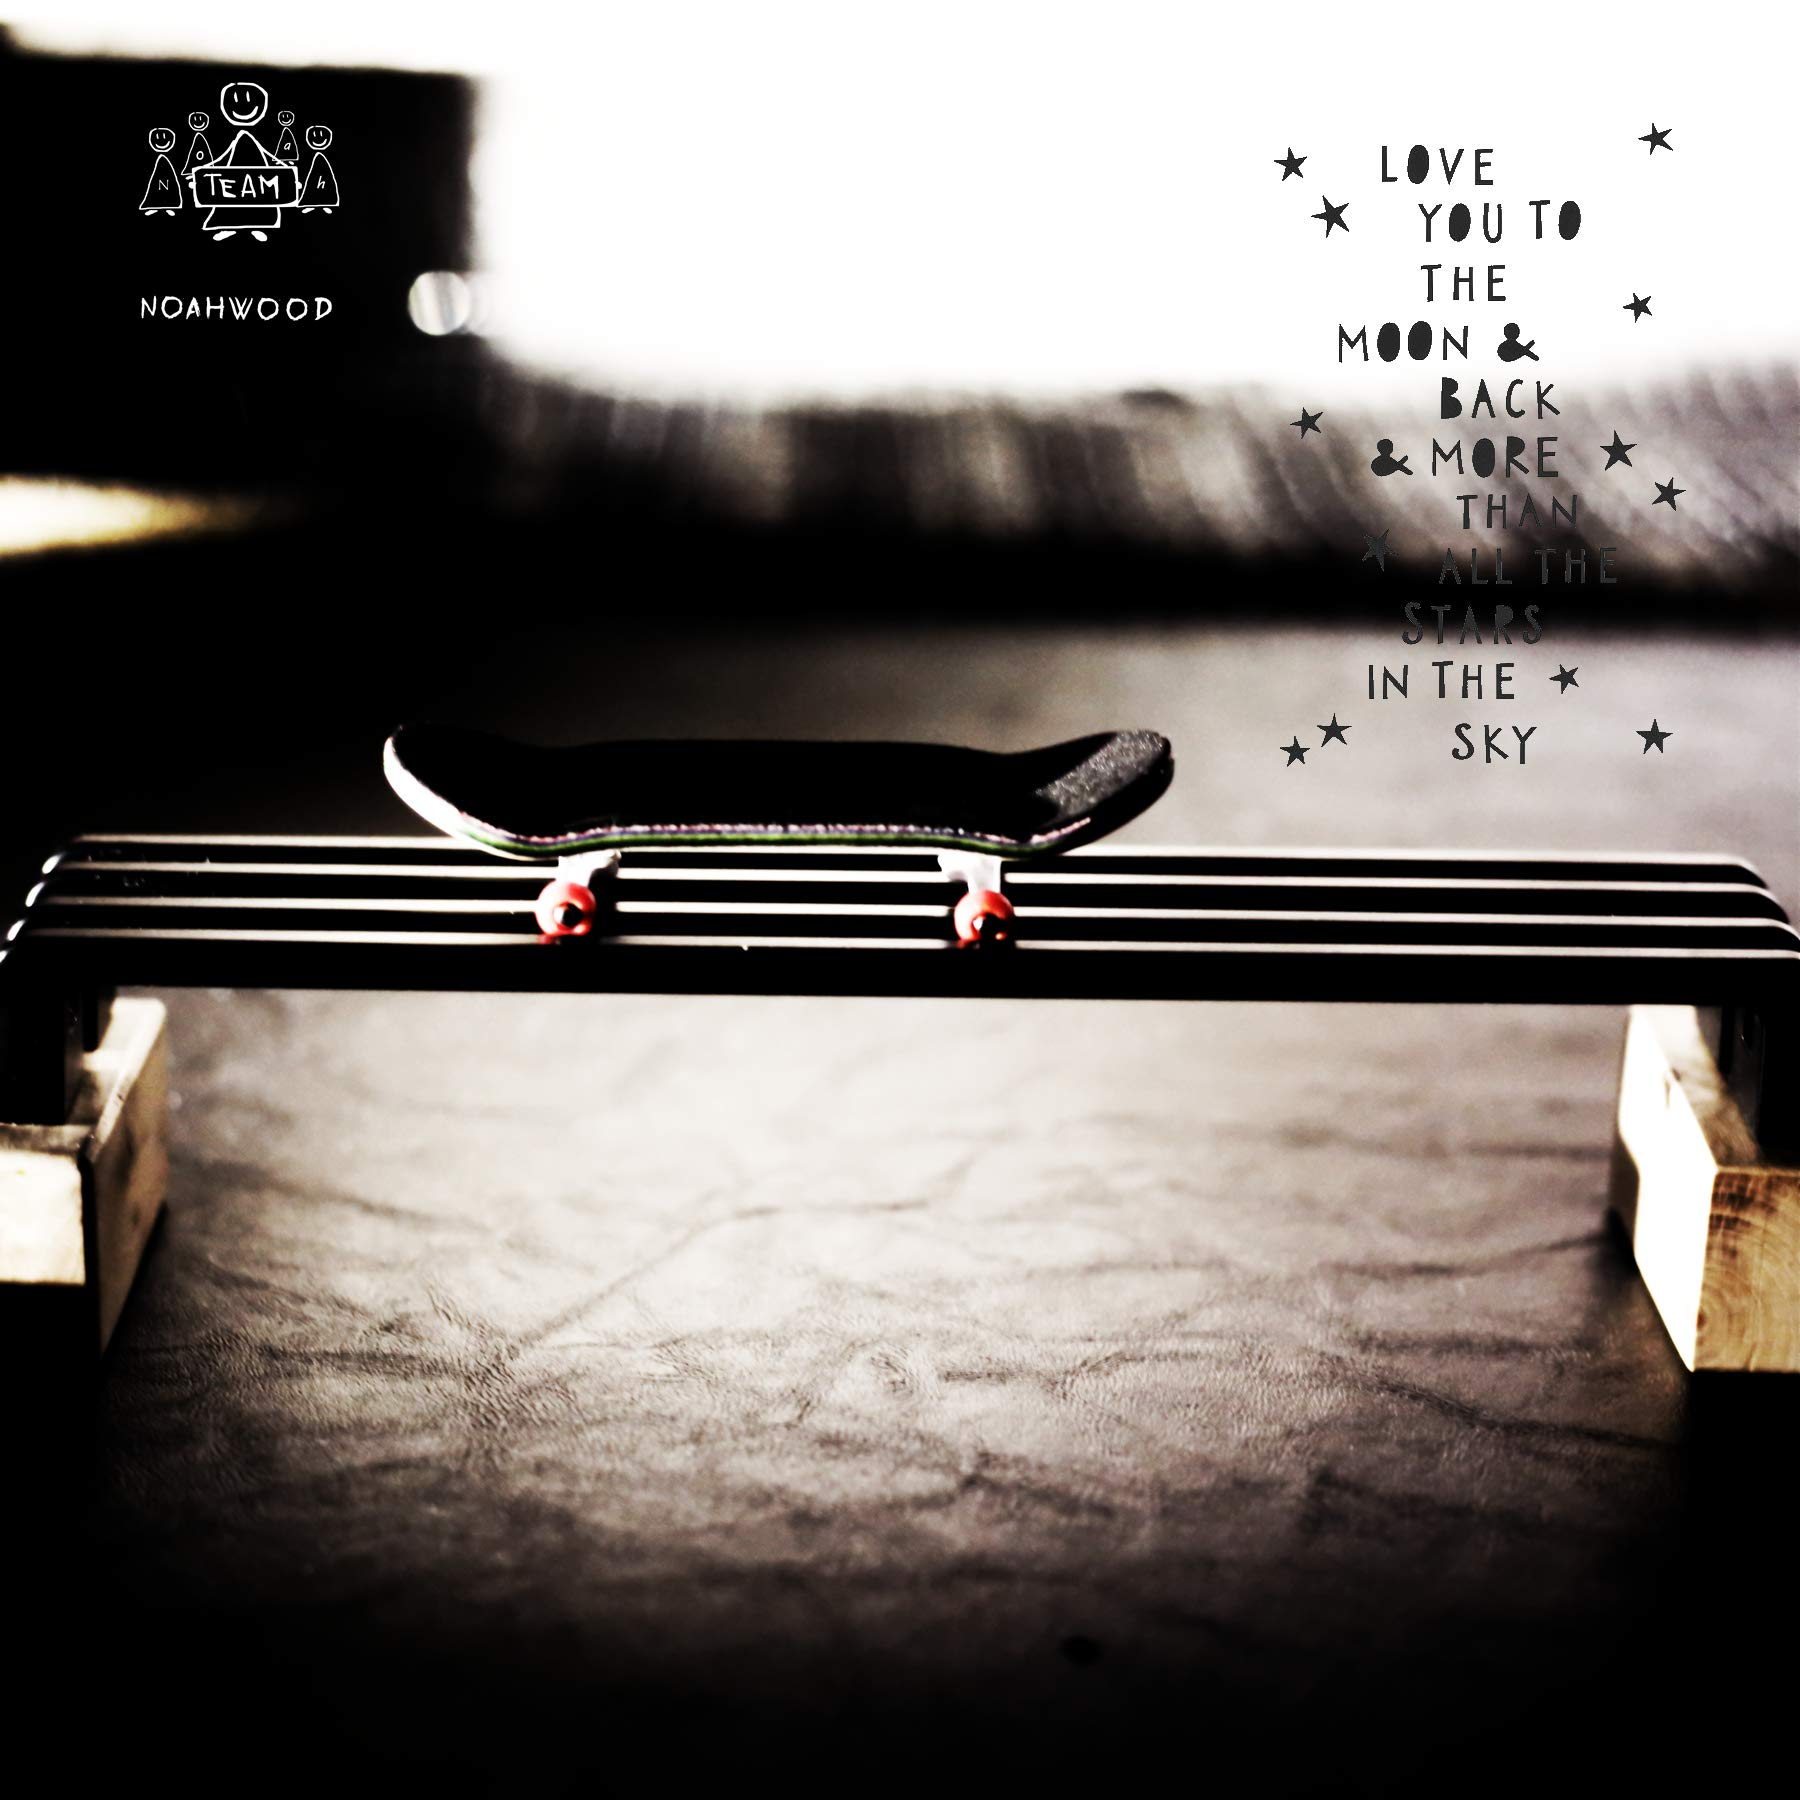 NOAHWOOD Wooden PRO Fingerboards (Deck,Truck,Wheel / a Set) (Happy New Year I) by NOAHWOOD (Image #8)